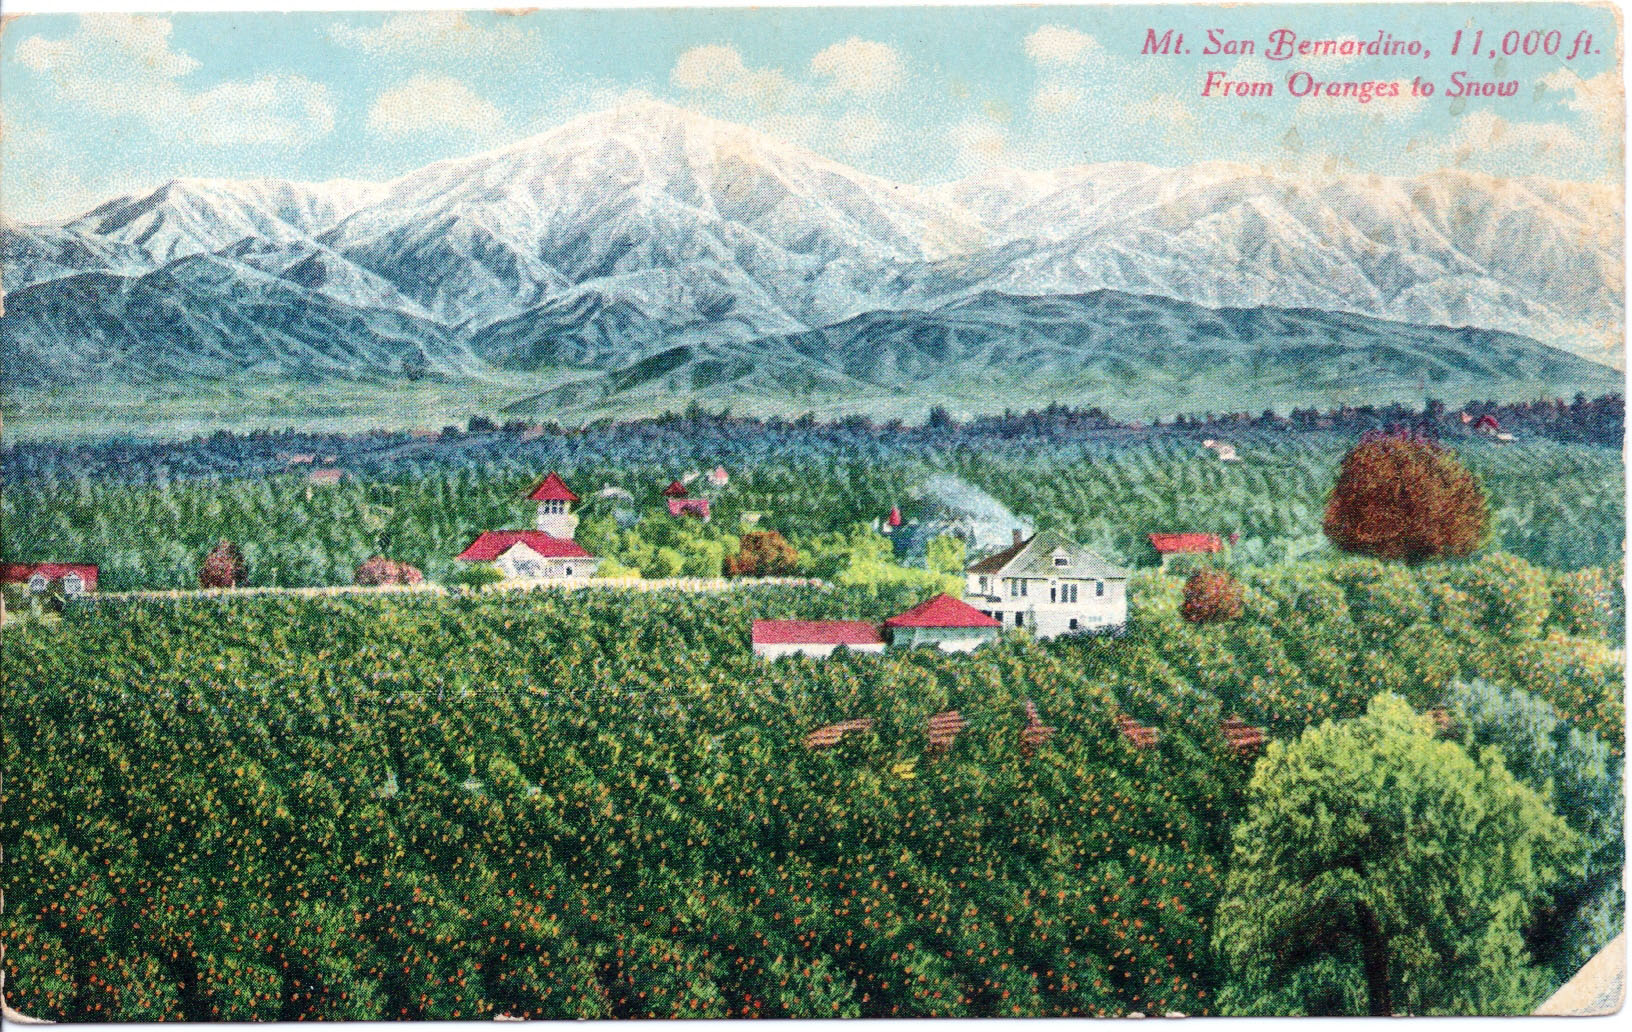 Regional boosters and promoters of Southern California's citrus industry oth loved images like this, in which snow-capped peaks frame orange groves. Courtesy of the David Boulé Collection.